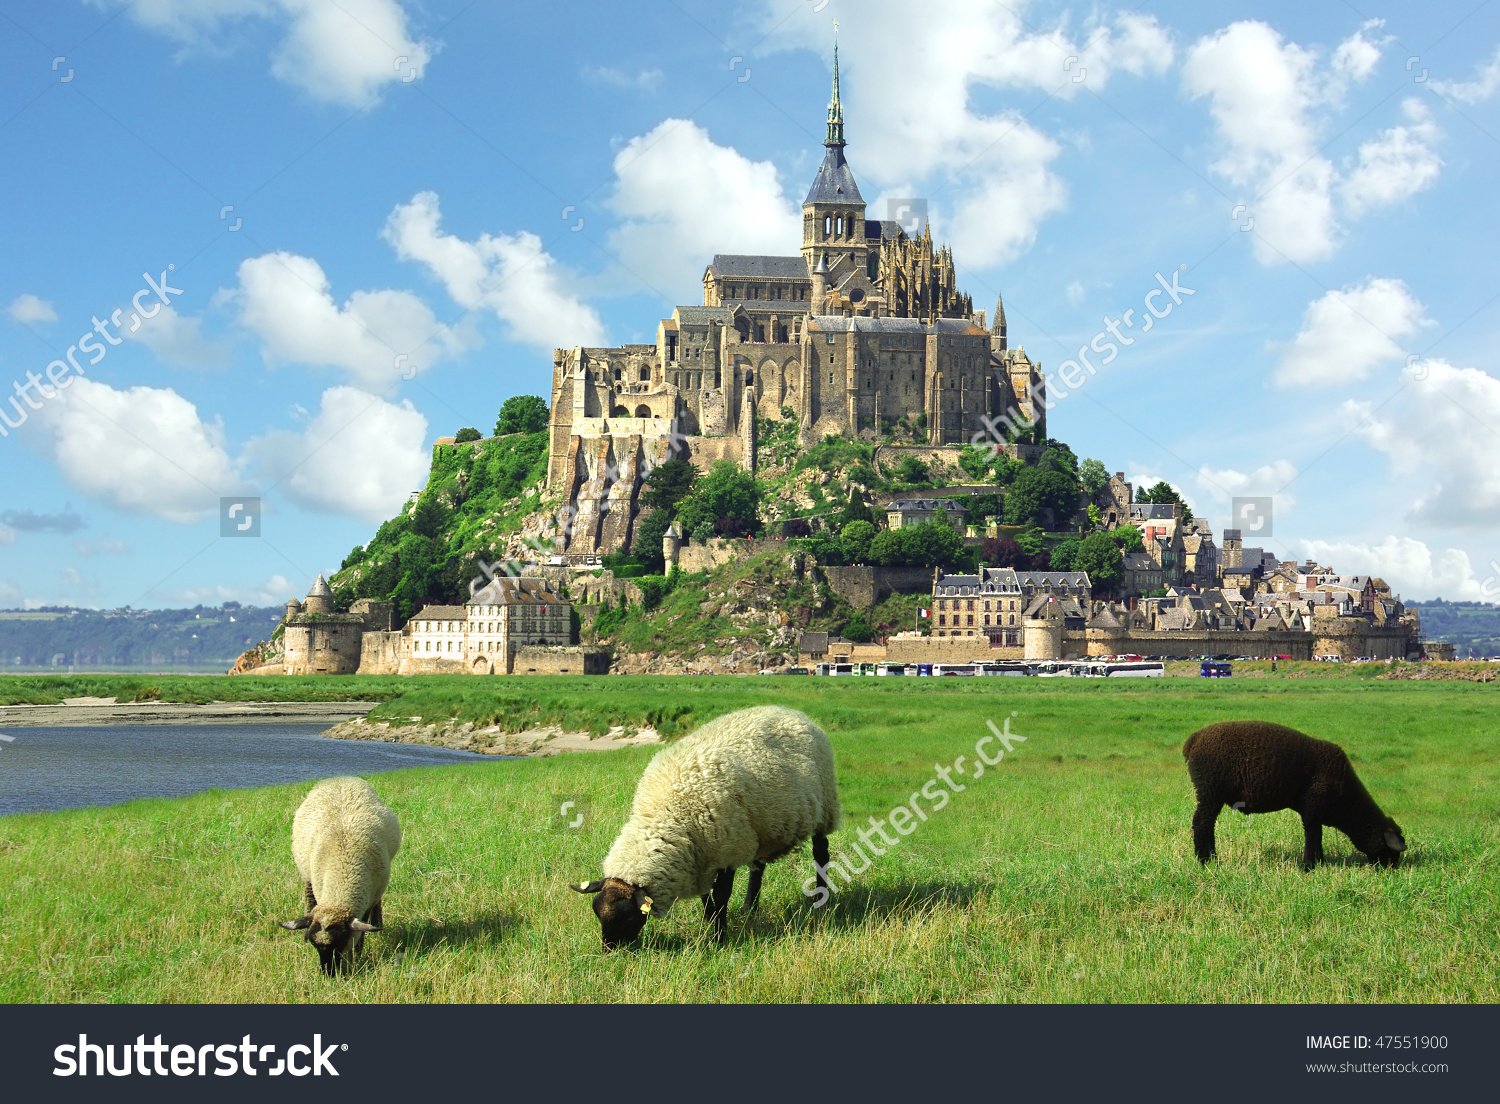 Mont Saint Michel Stock Photo 47551900.